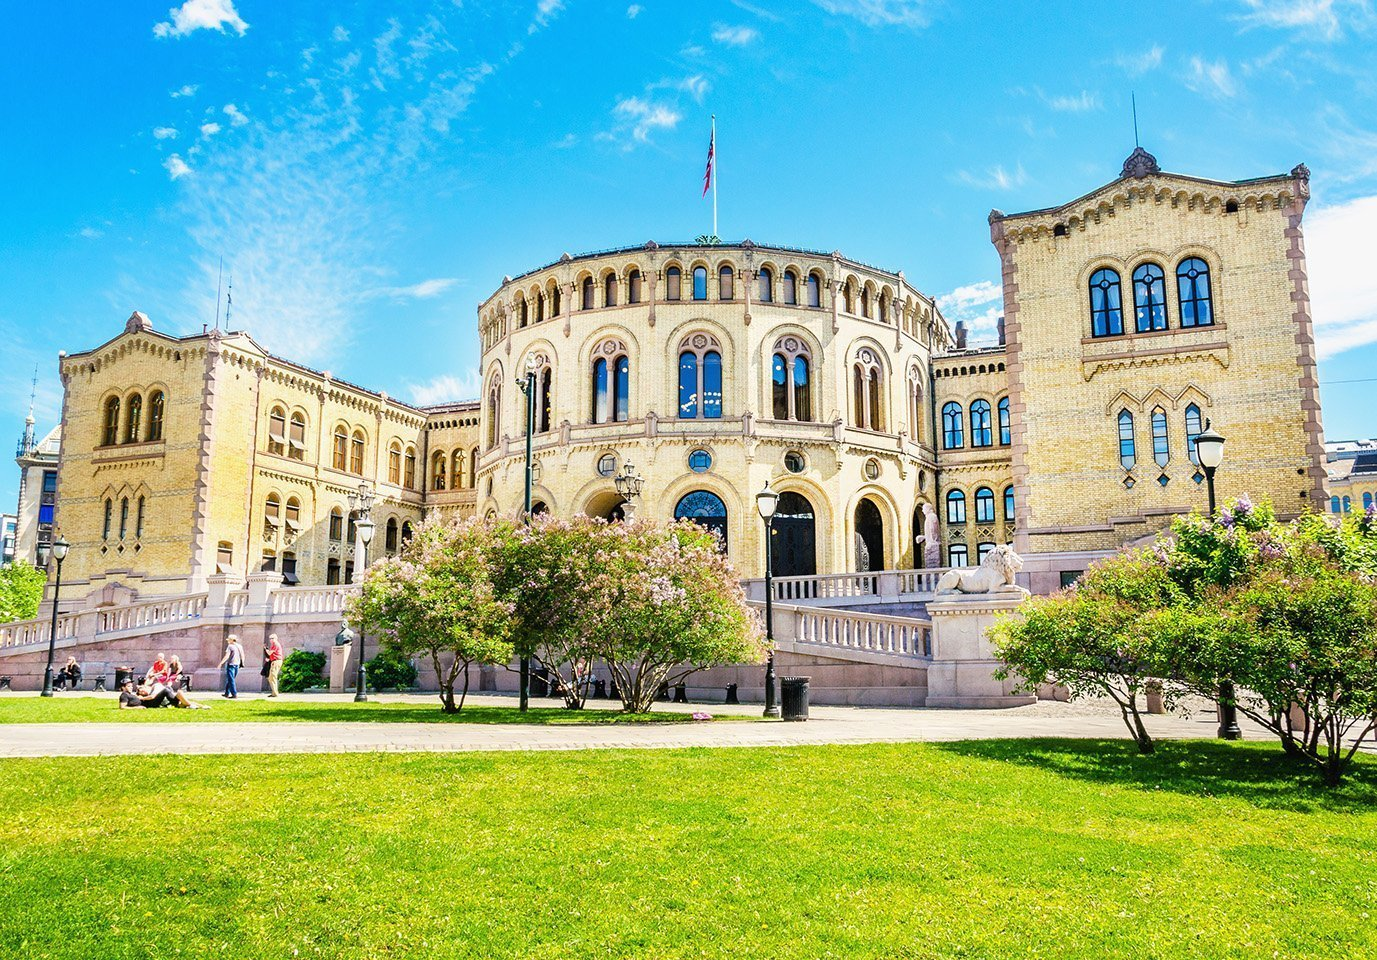 The parliament building in Oslo, Stortinget. | © A. Jedynak - stock.adobe.com.